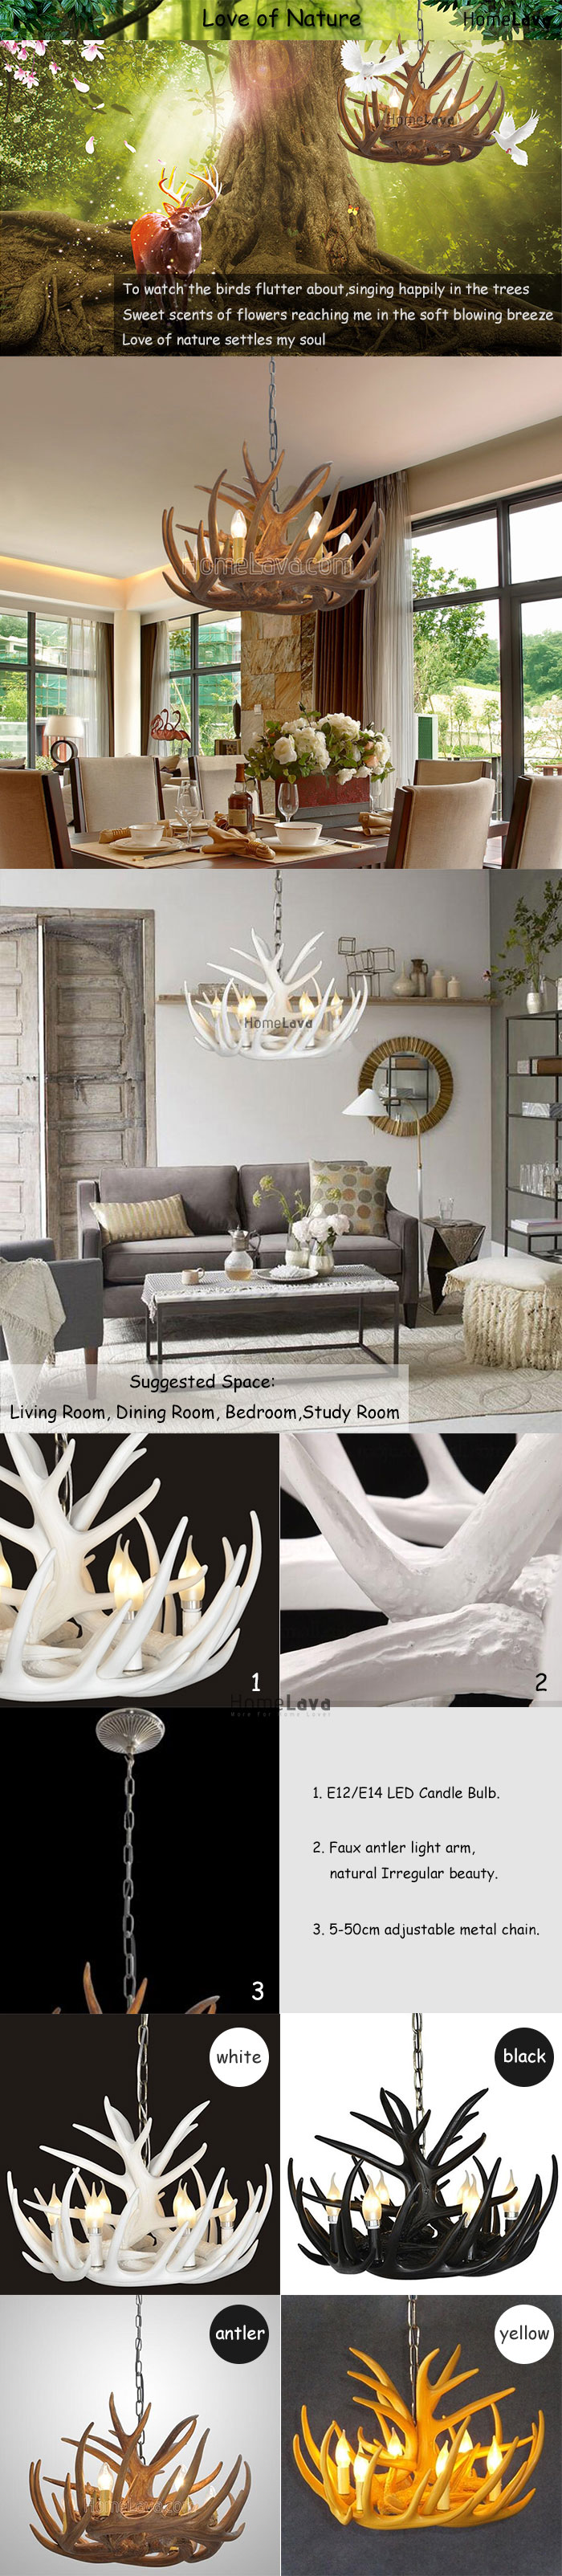 (In Stock) Rustic Cascade Chandelier Antler Chandelier Antler Lighting with 6 Lights Black Chandelier Dining Room Lighting Ideas Lighting Living Room Bedroom Ceiling Lights(Love Of Nature)